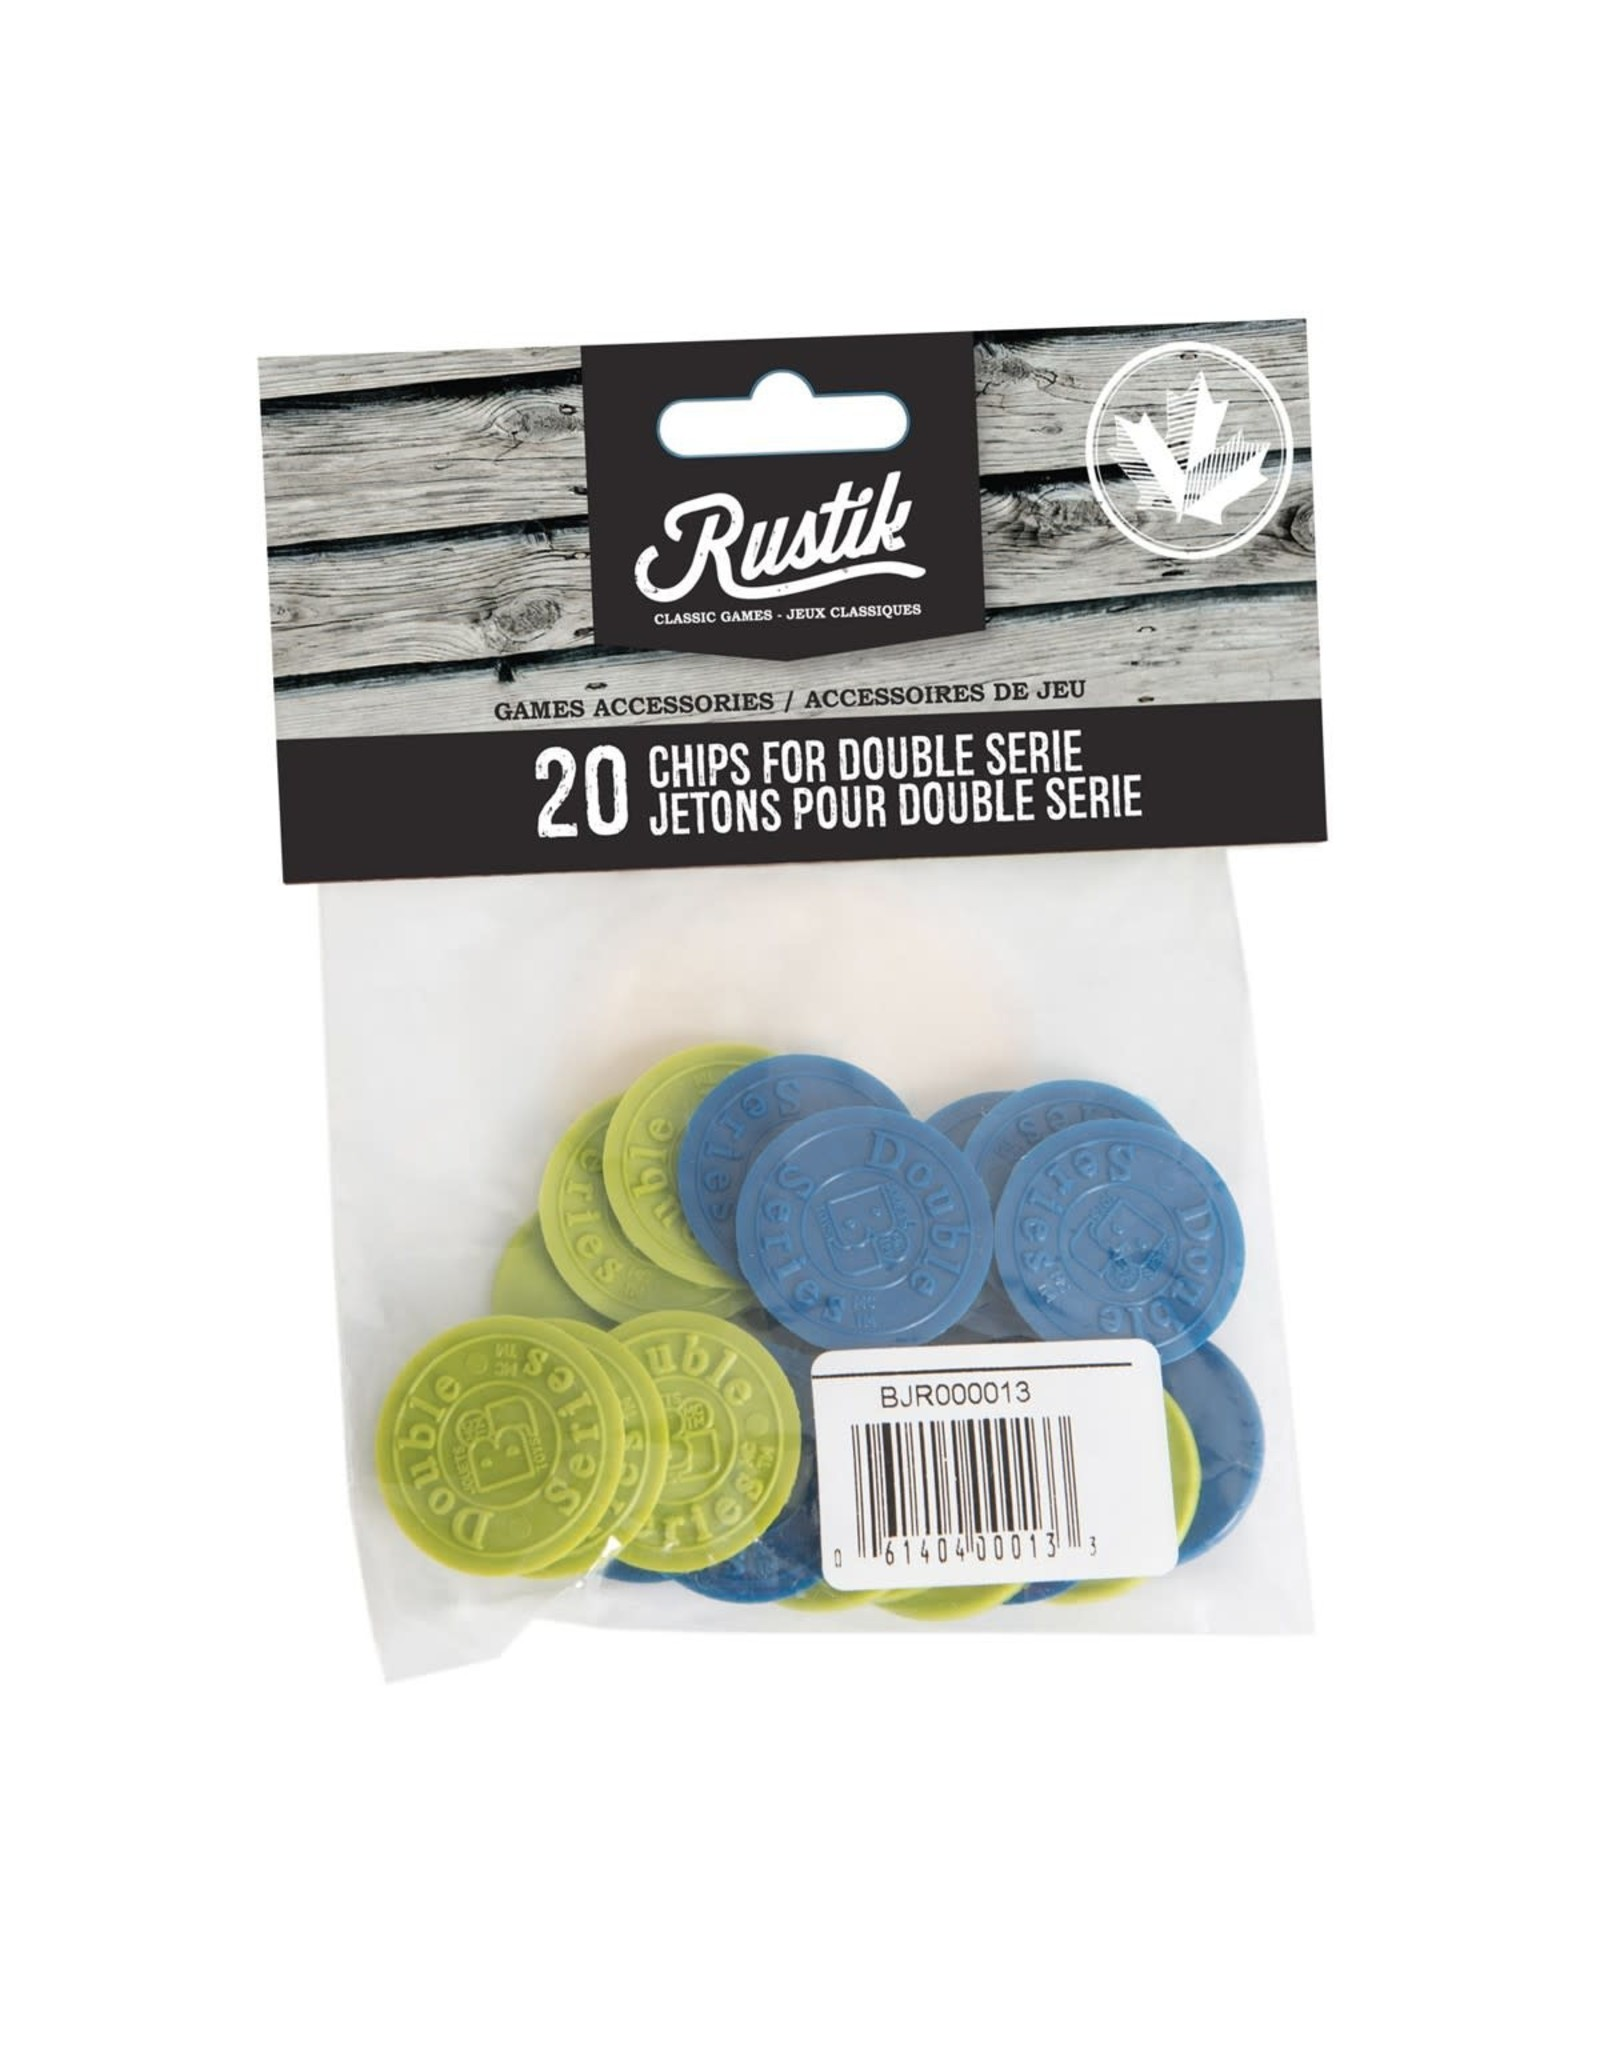 Rustik 20 Chips for Double Series Clearance